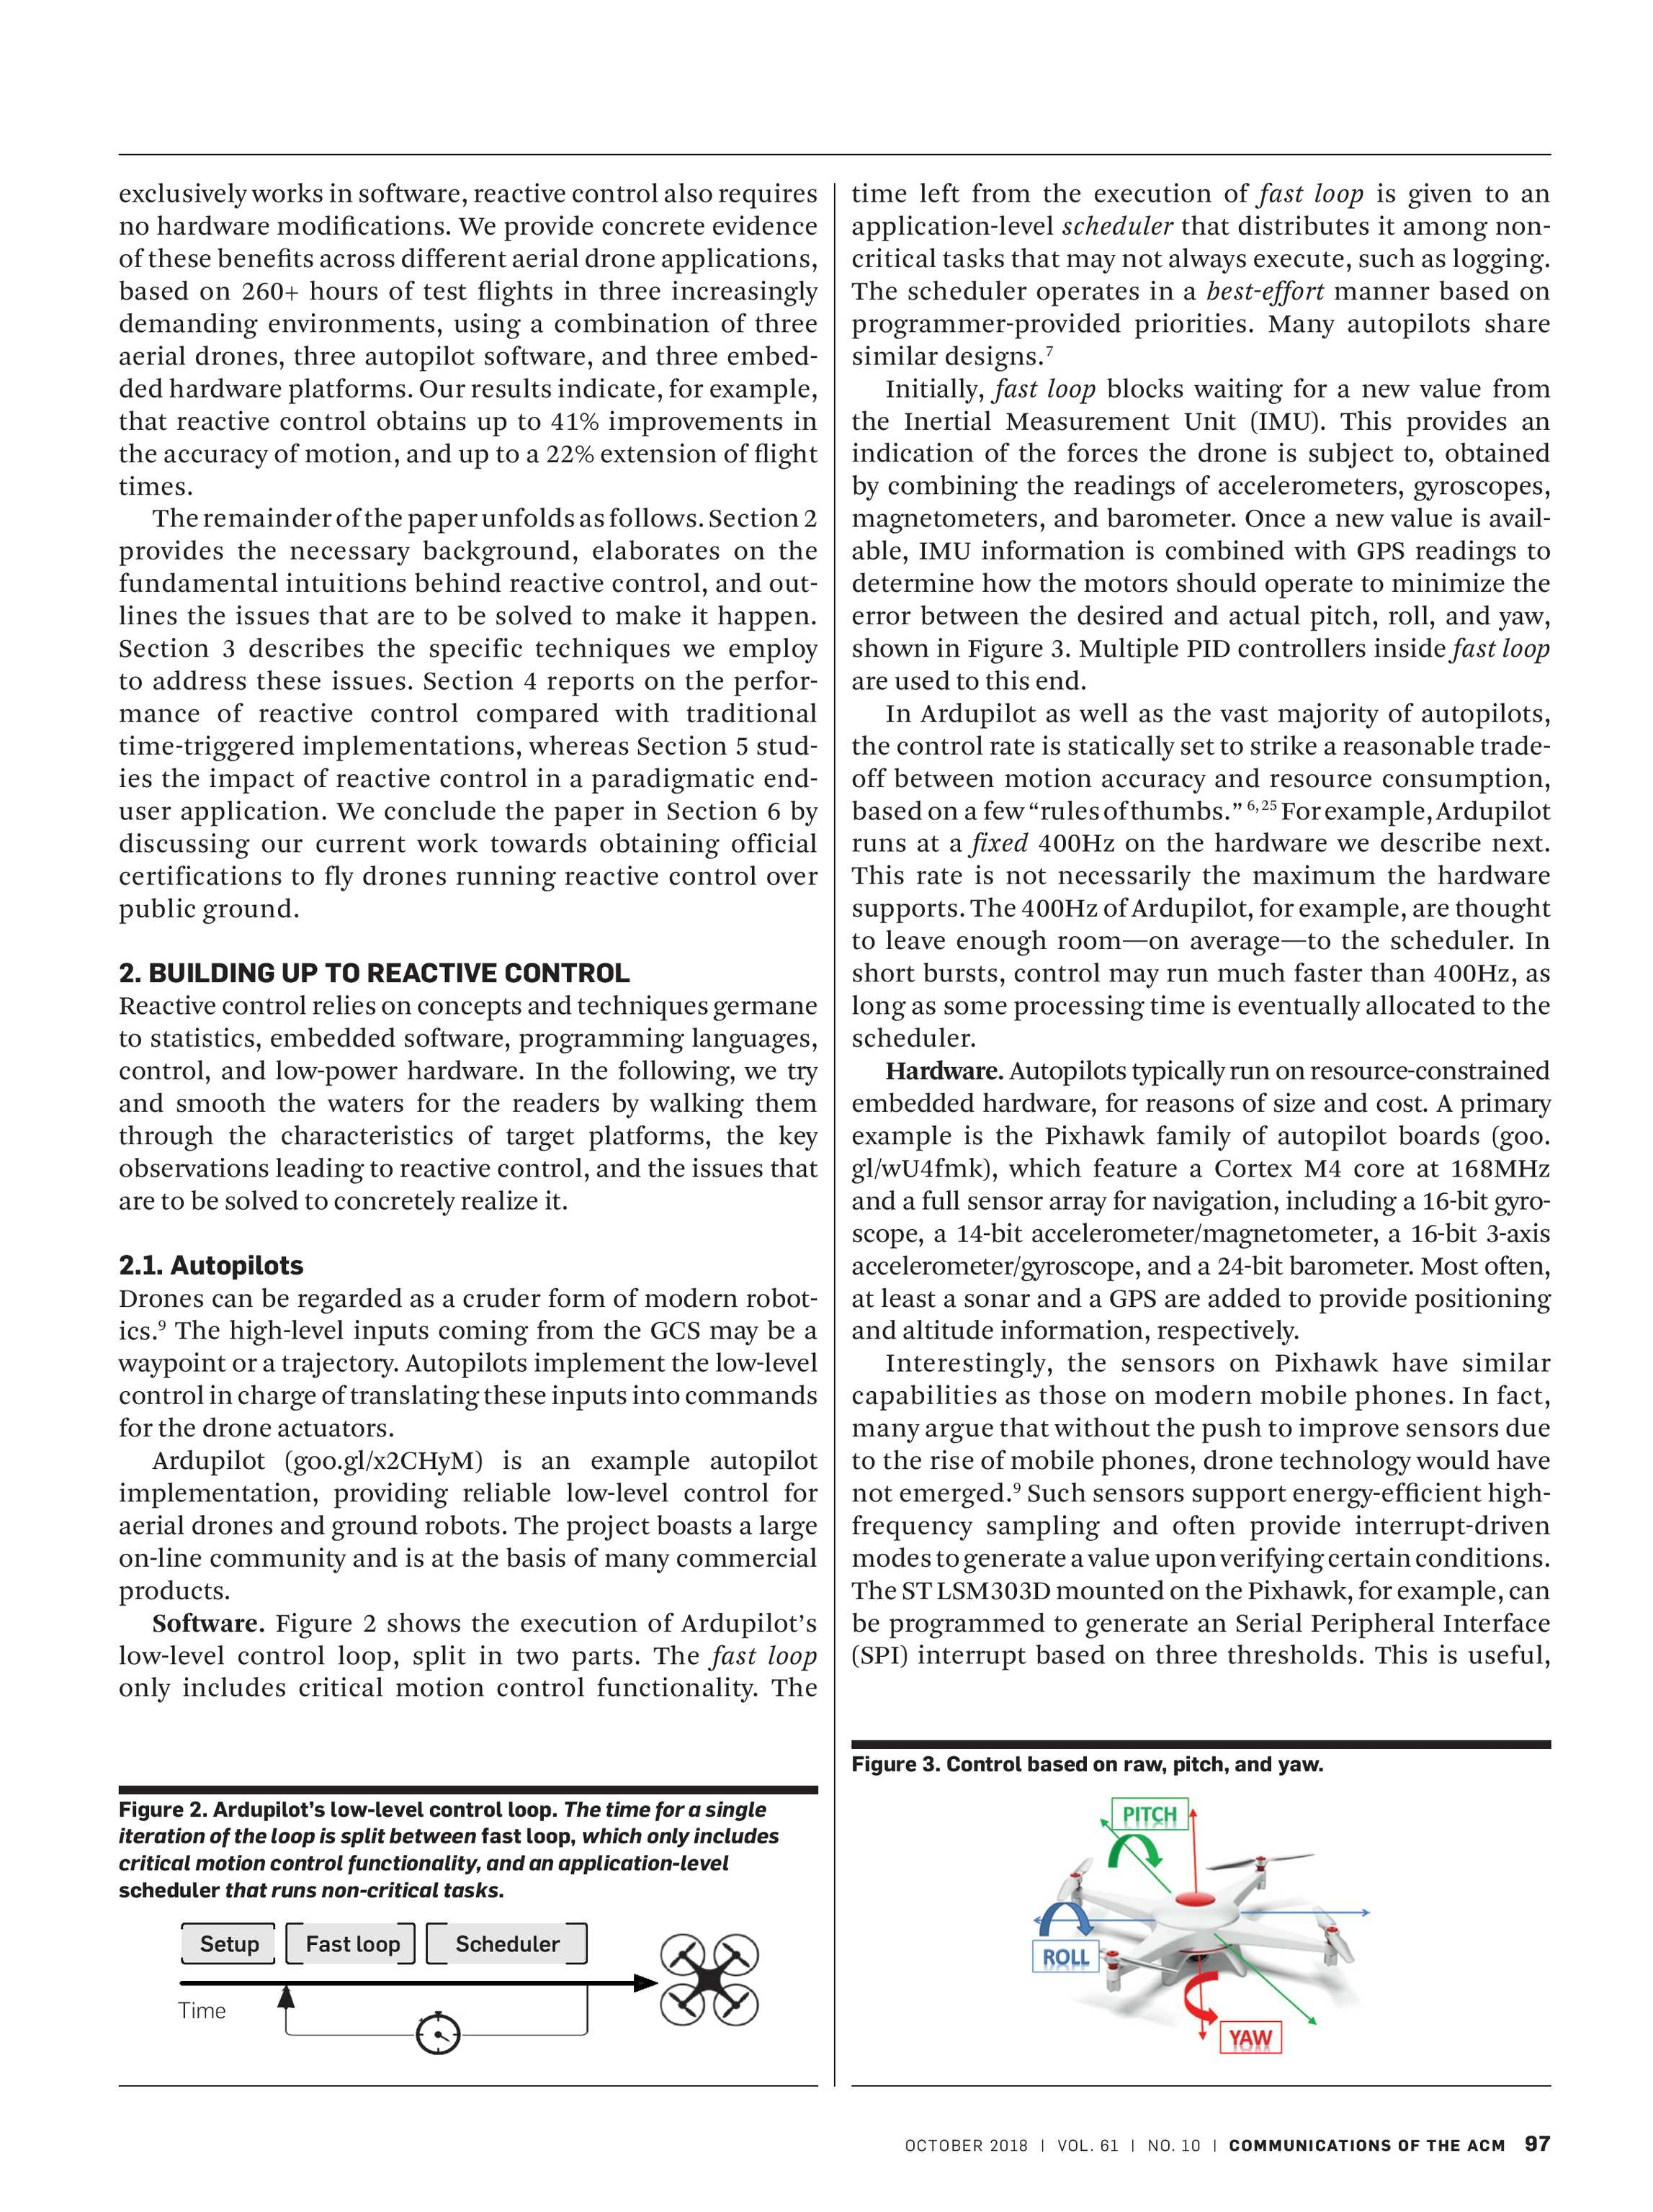 Communications of the ACM - October 2018 - page 97